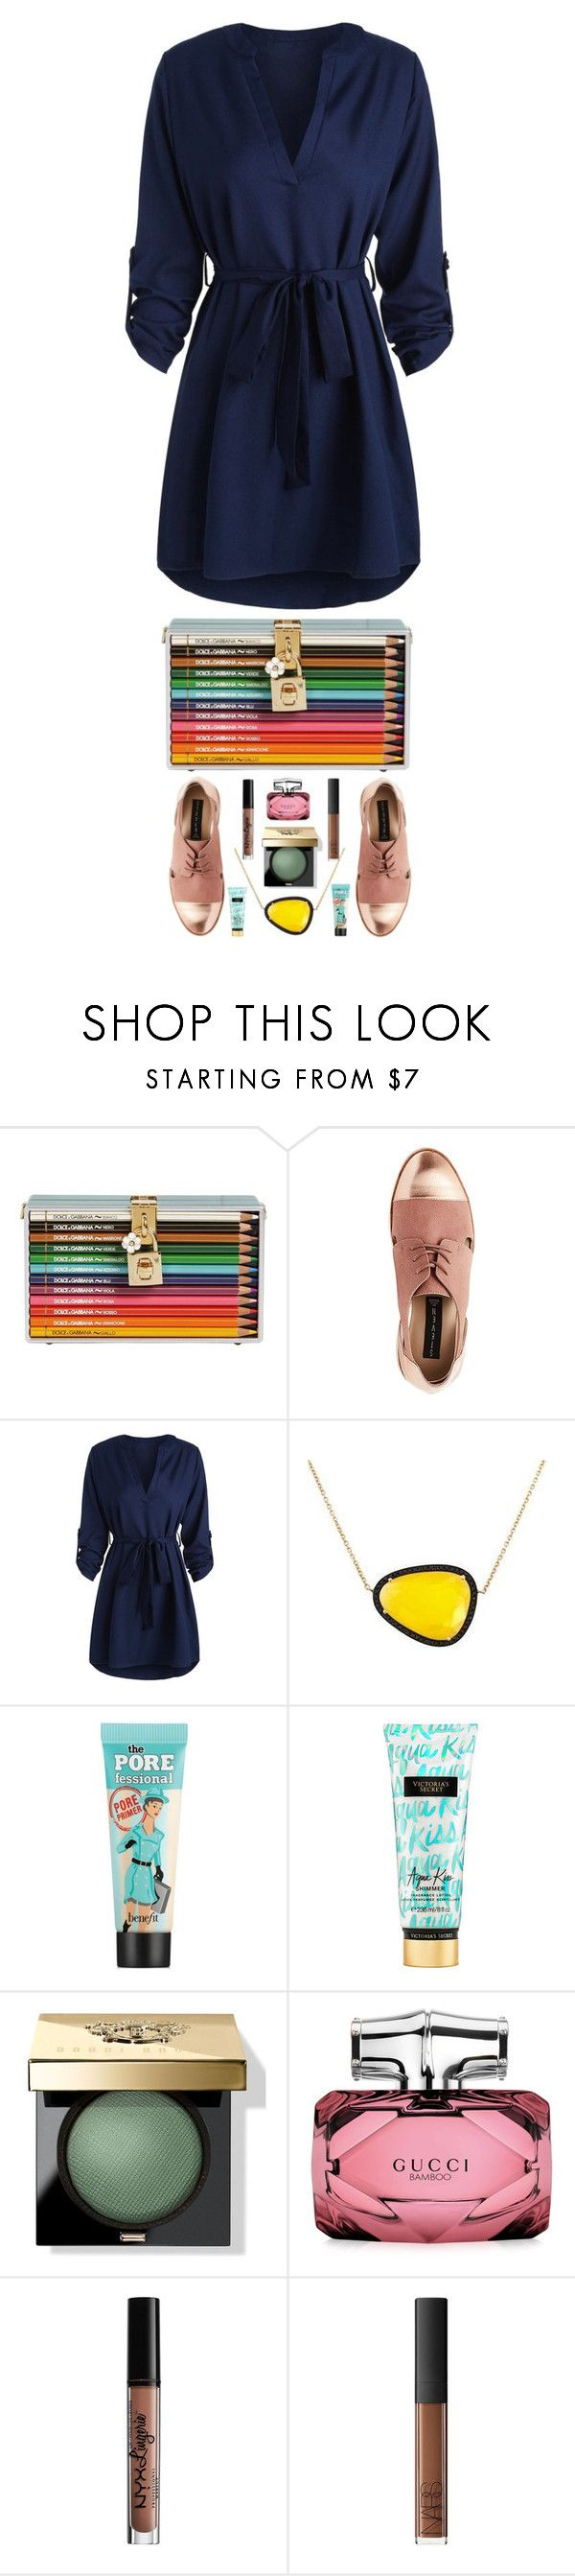 """""""Colour Me In"""" by cocochaneljr on Polyvore featuring Dolce&Gabbana, Christina Debs, Benefit, Victoria's Secret, Bobbi Brown Cosmetics, Gucci, Charlotte Russe and NARS Cosmetics"""